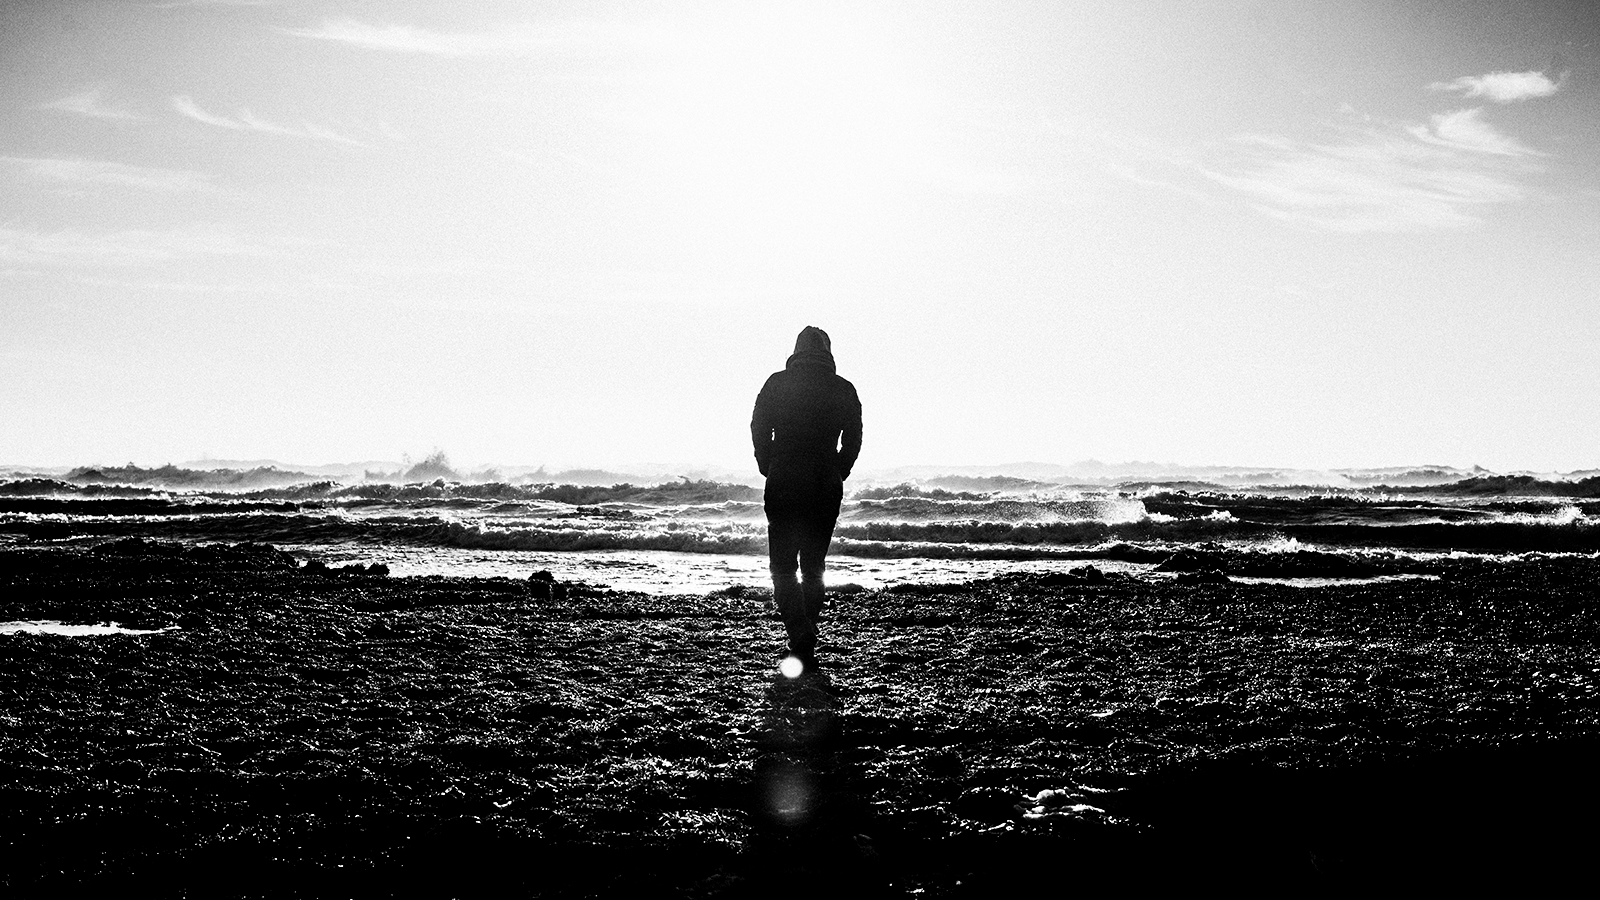 Alone time: Why it matters and how to claim it